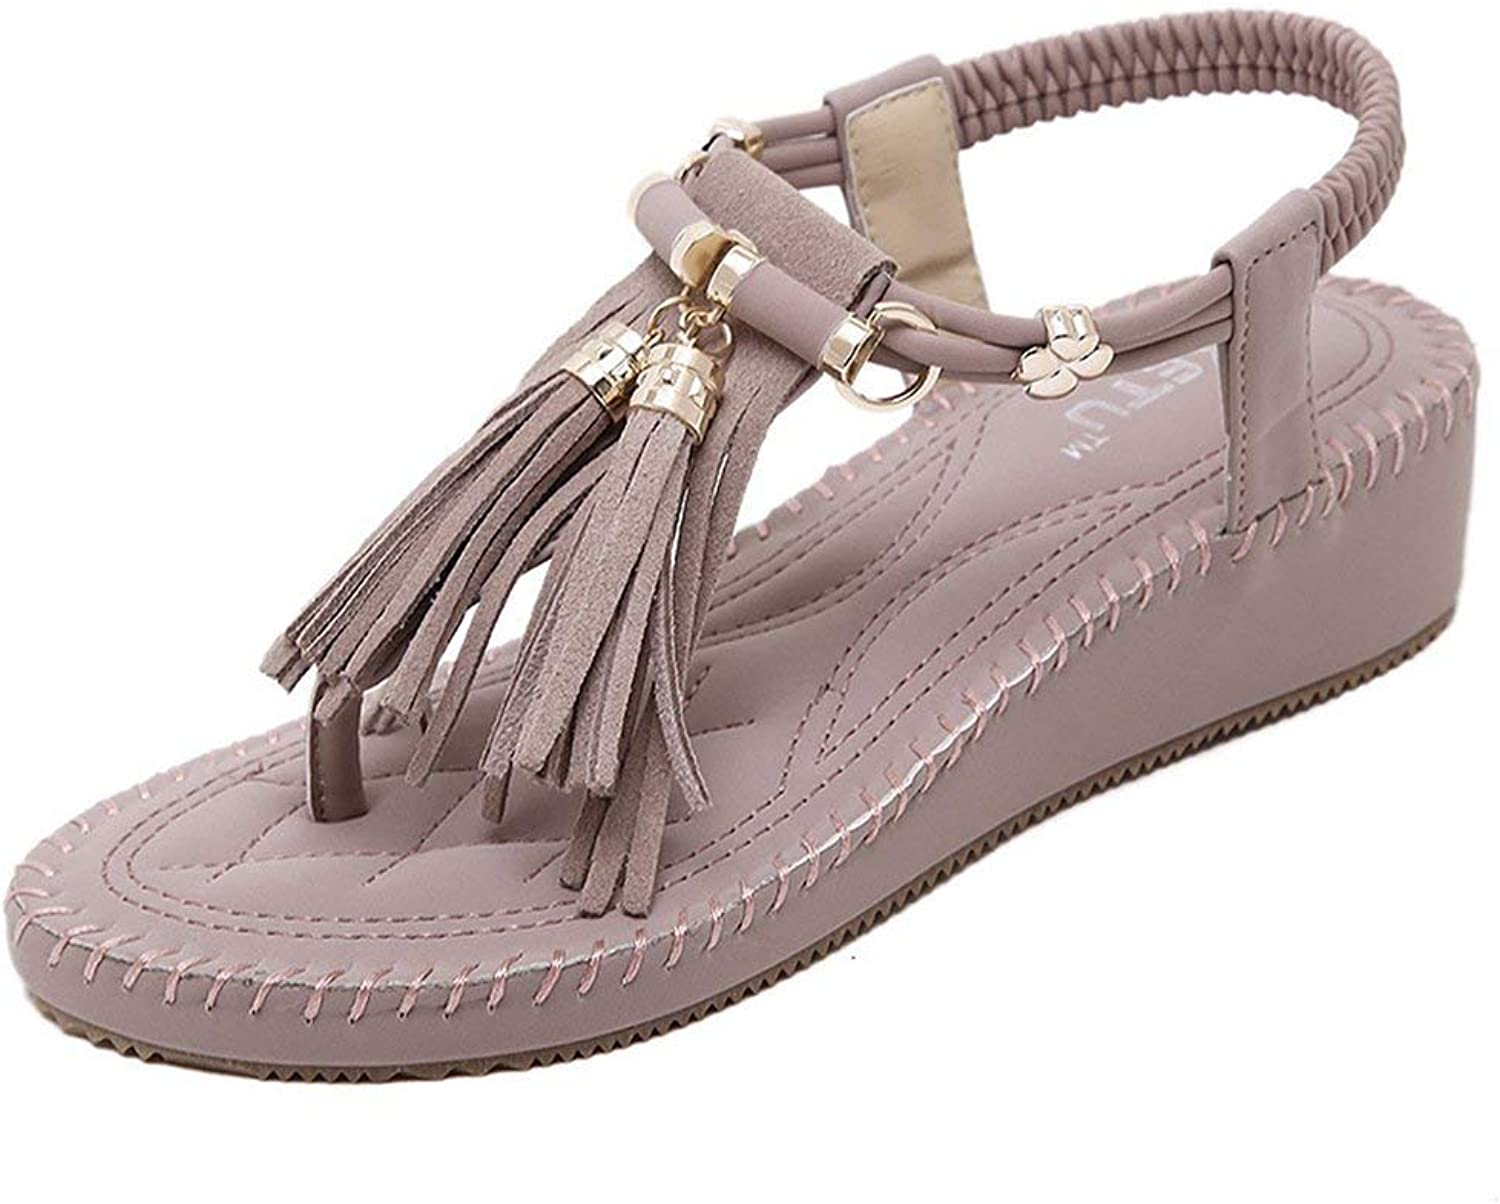 Gedigits Women's Trendy Fringe Ankle Strap Comfort Wedge Platform Thong Sandals Purple 4 M US